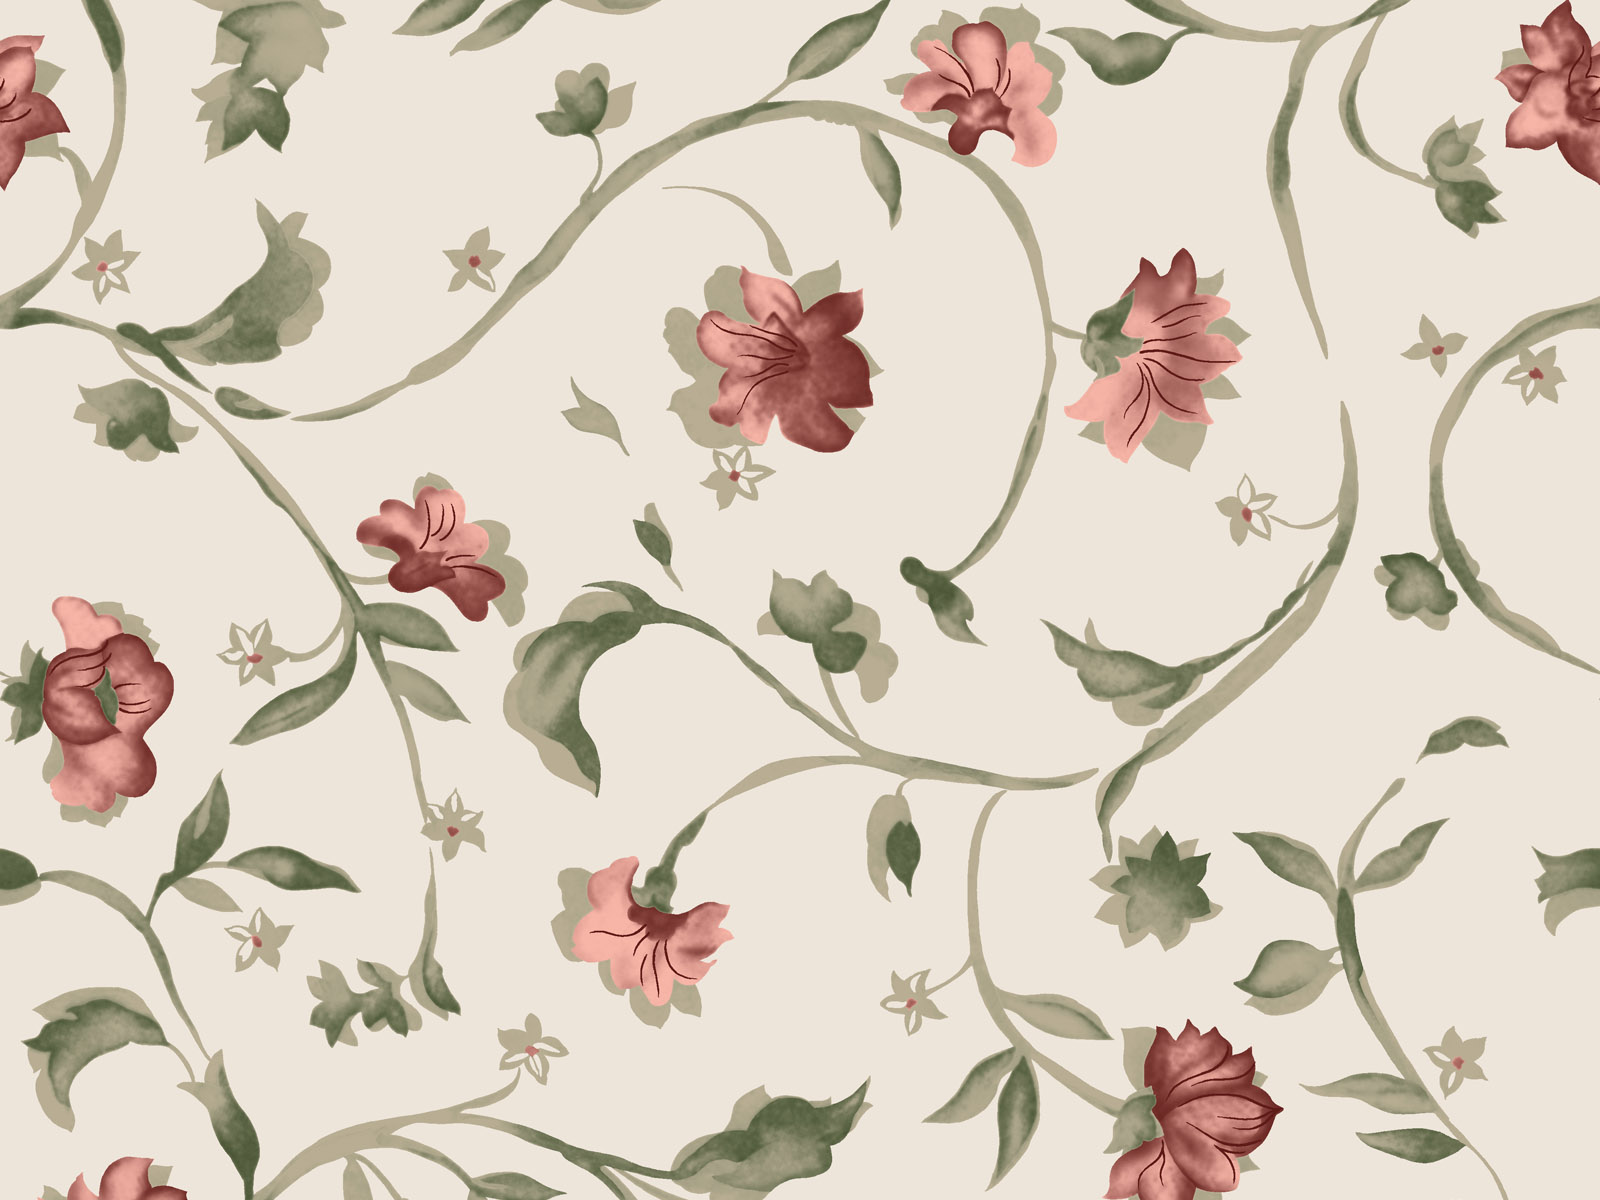 Background wallpaper pattern pattern 2105